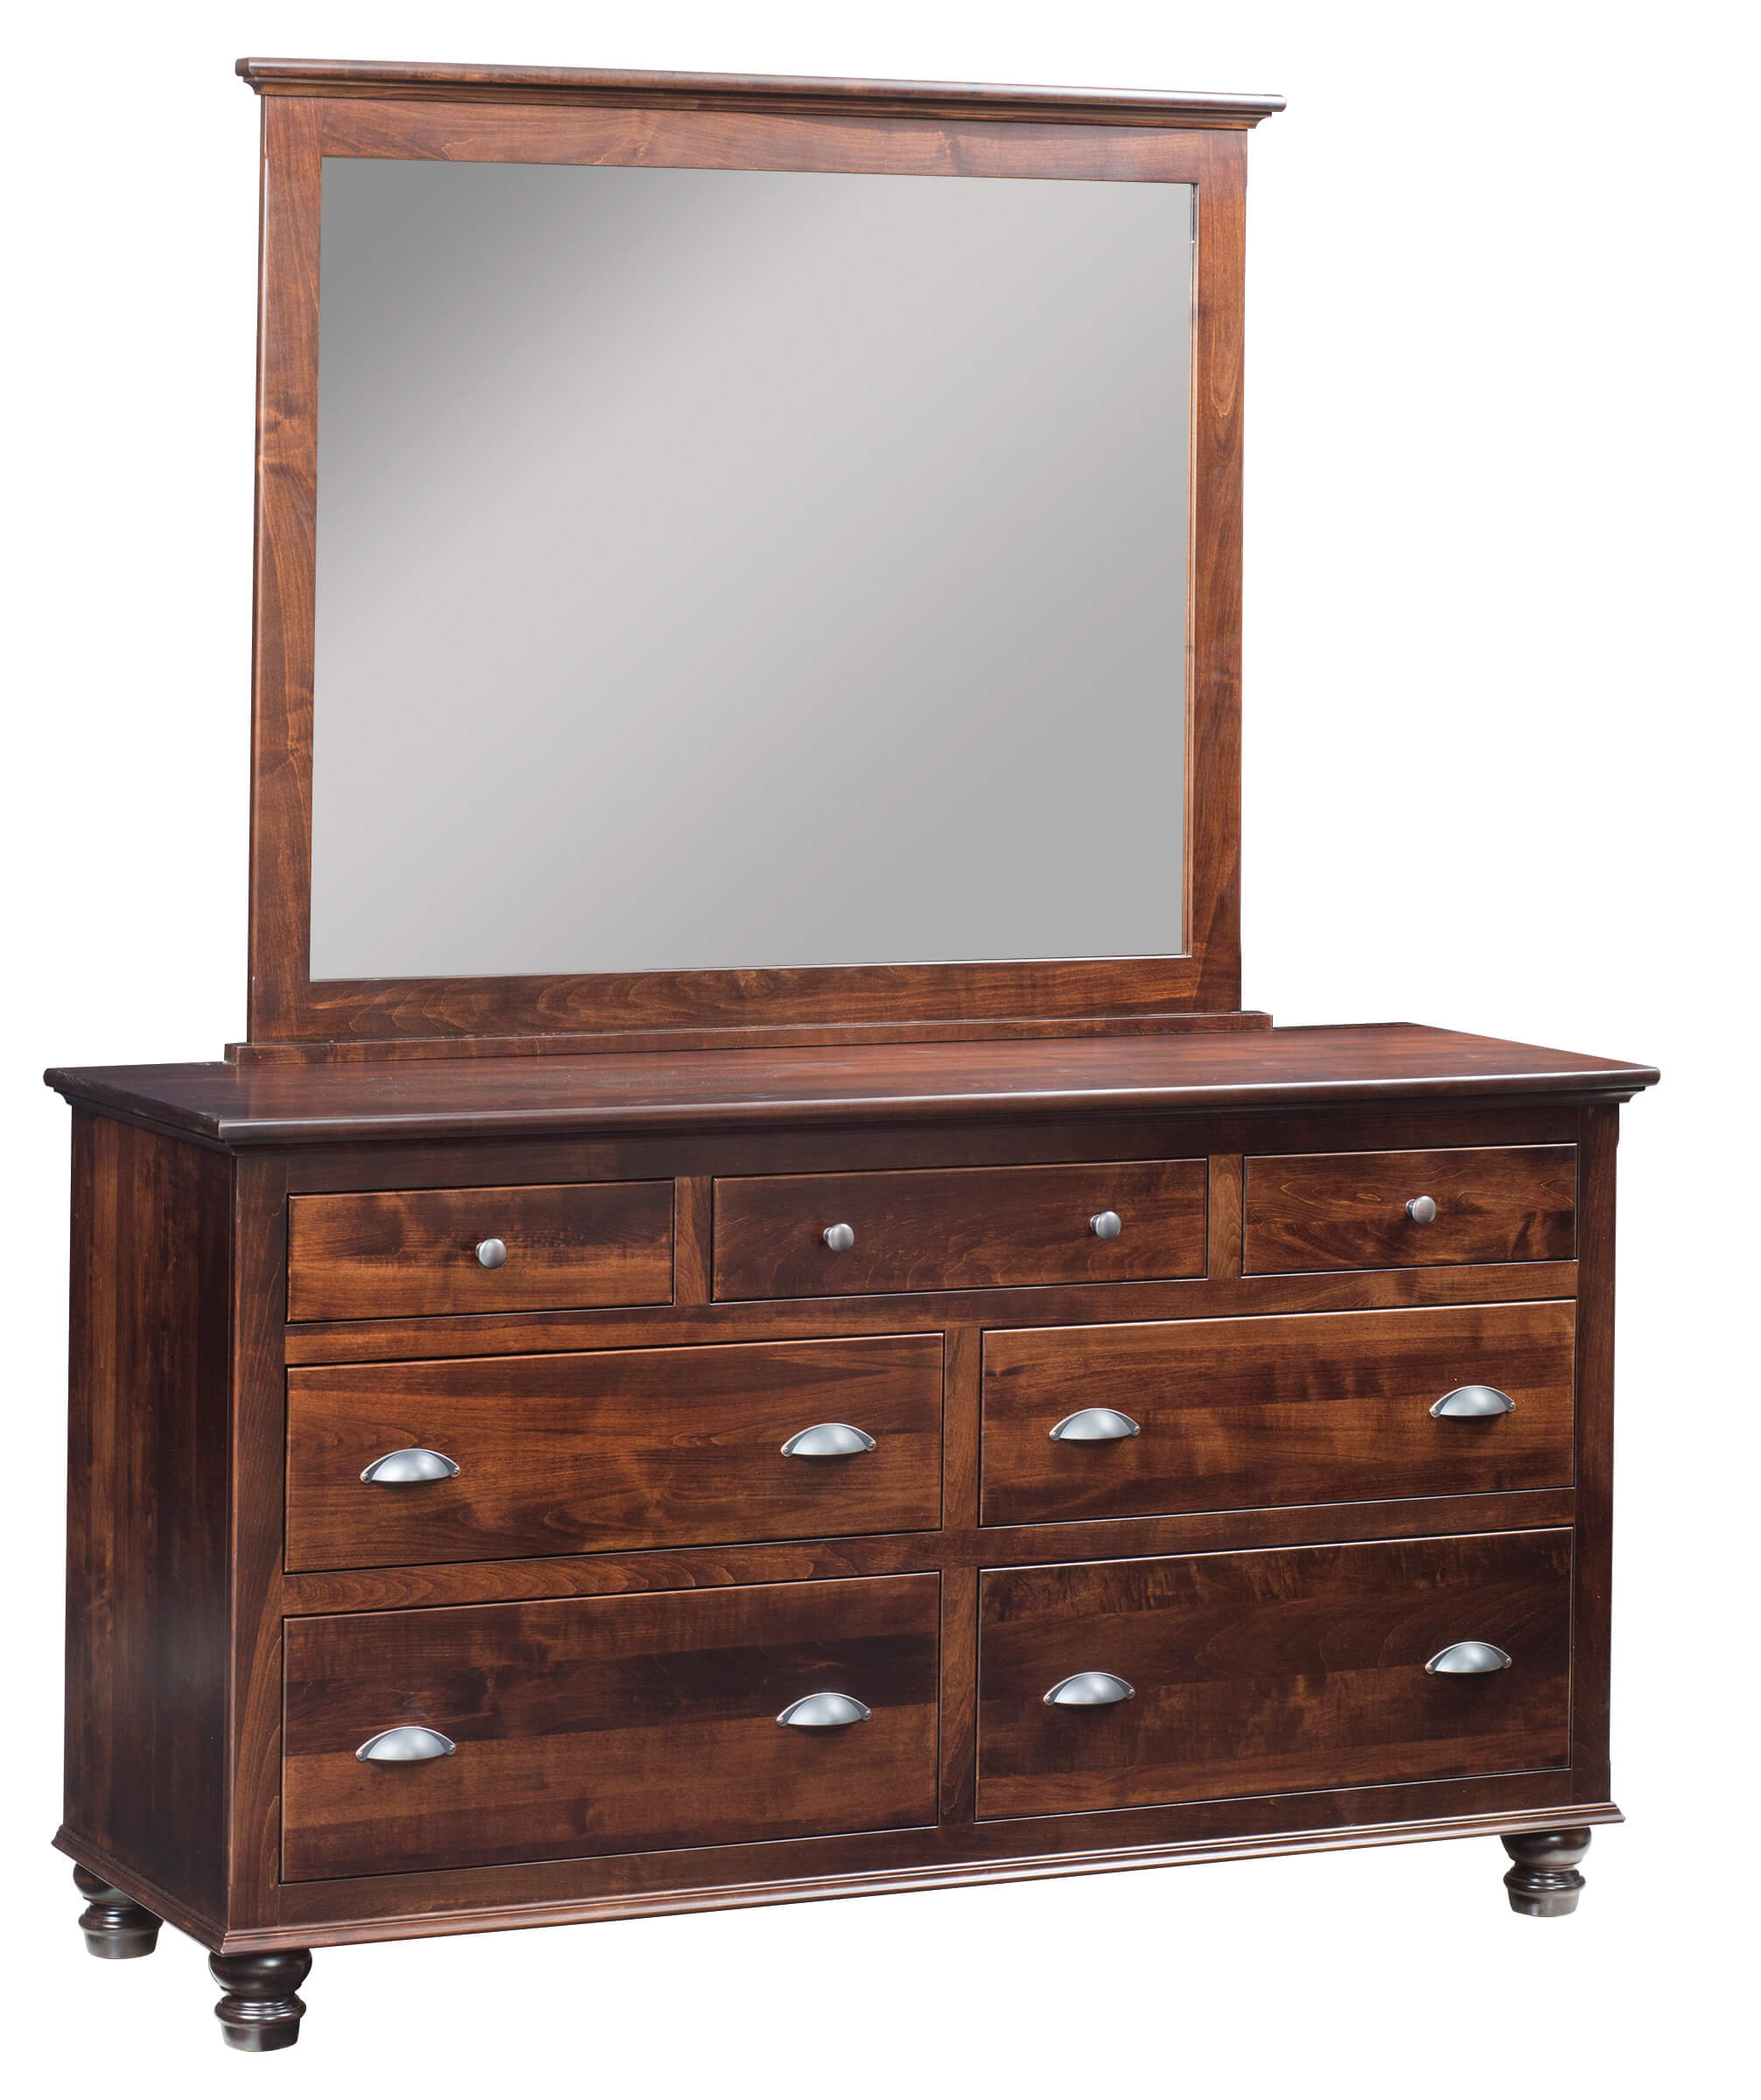 Choices 7 Drawer Dresser